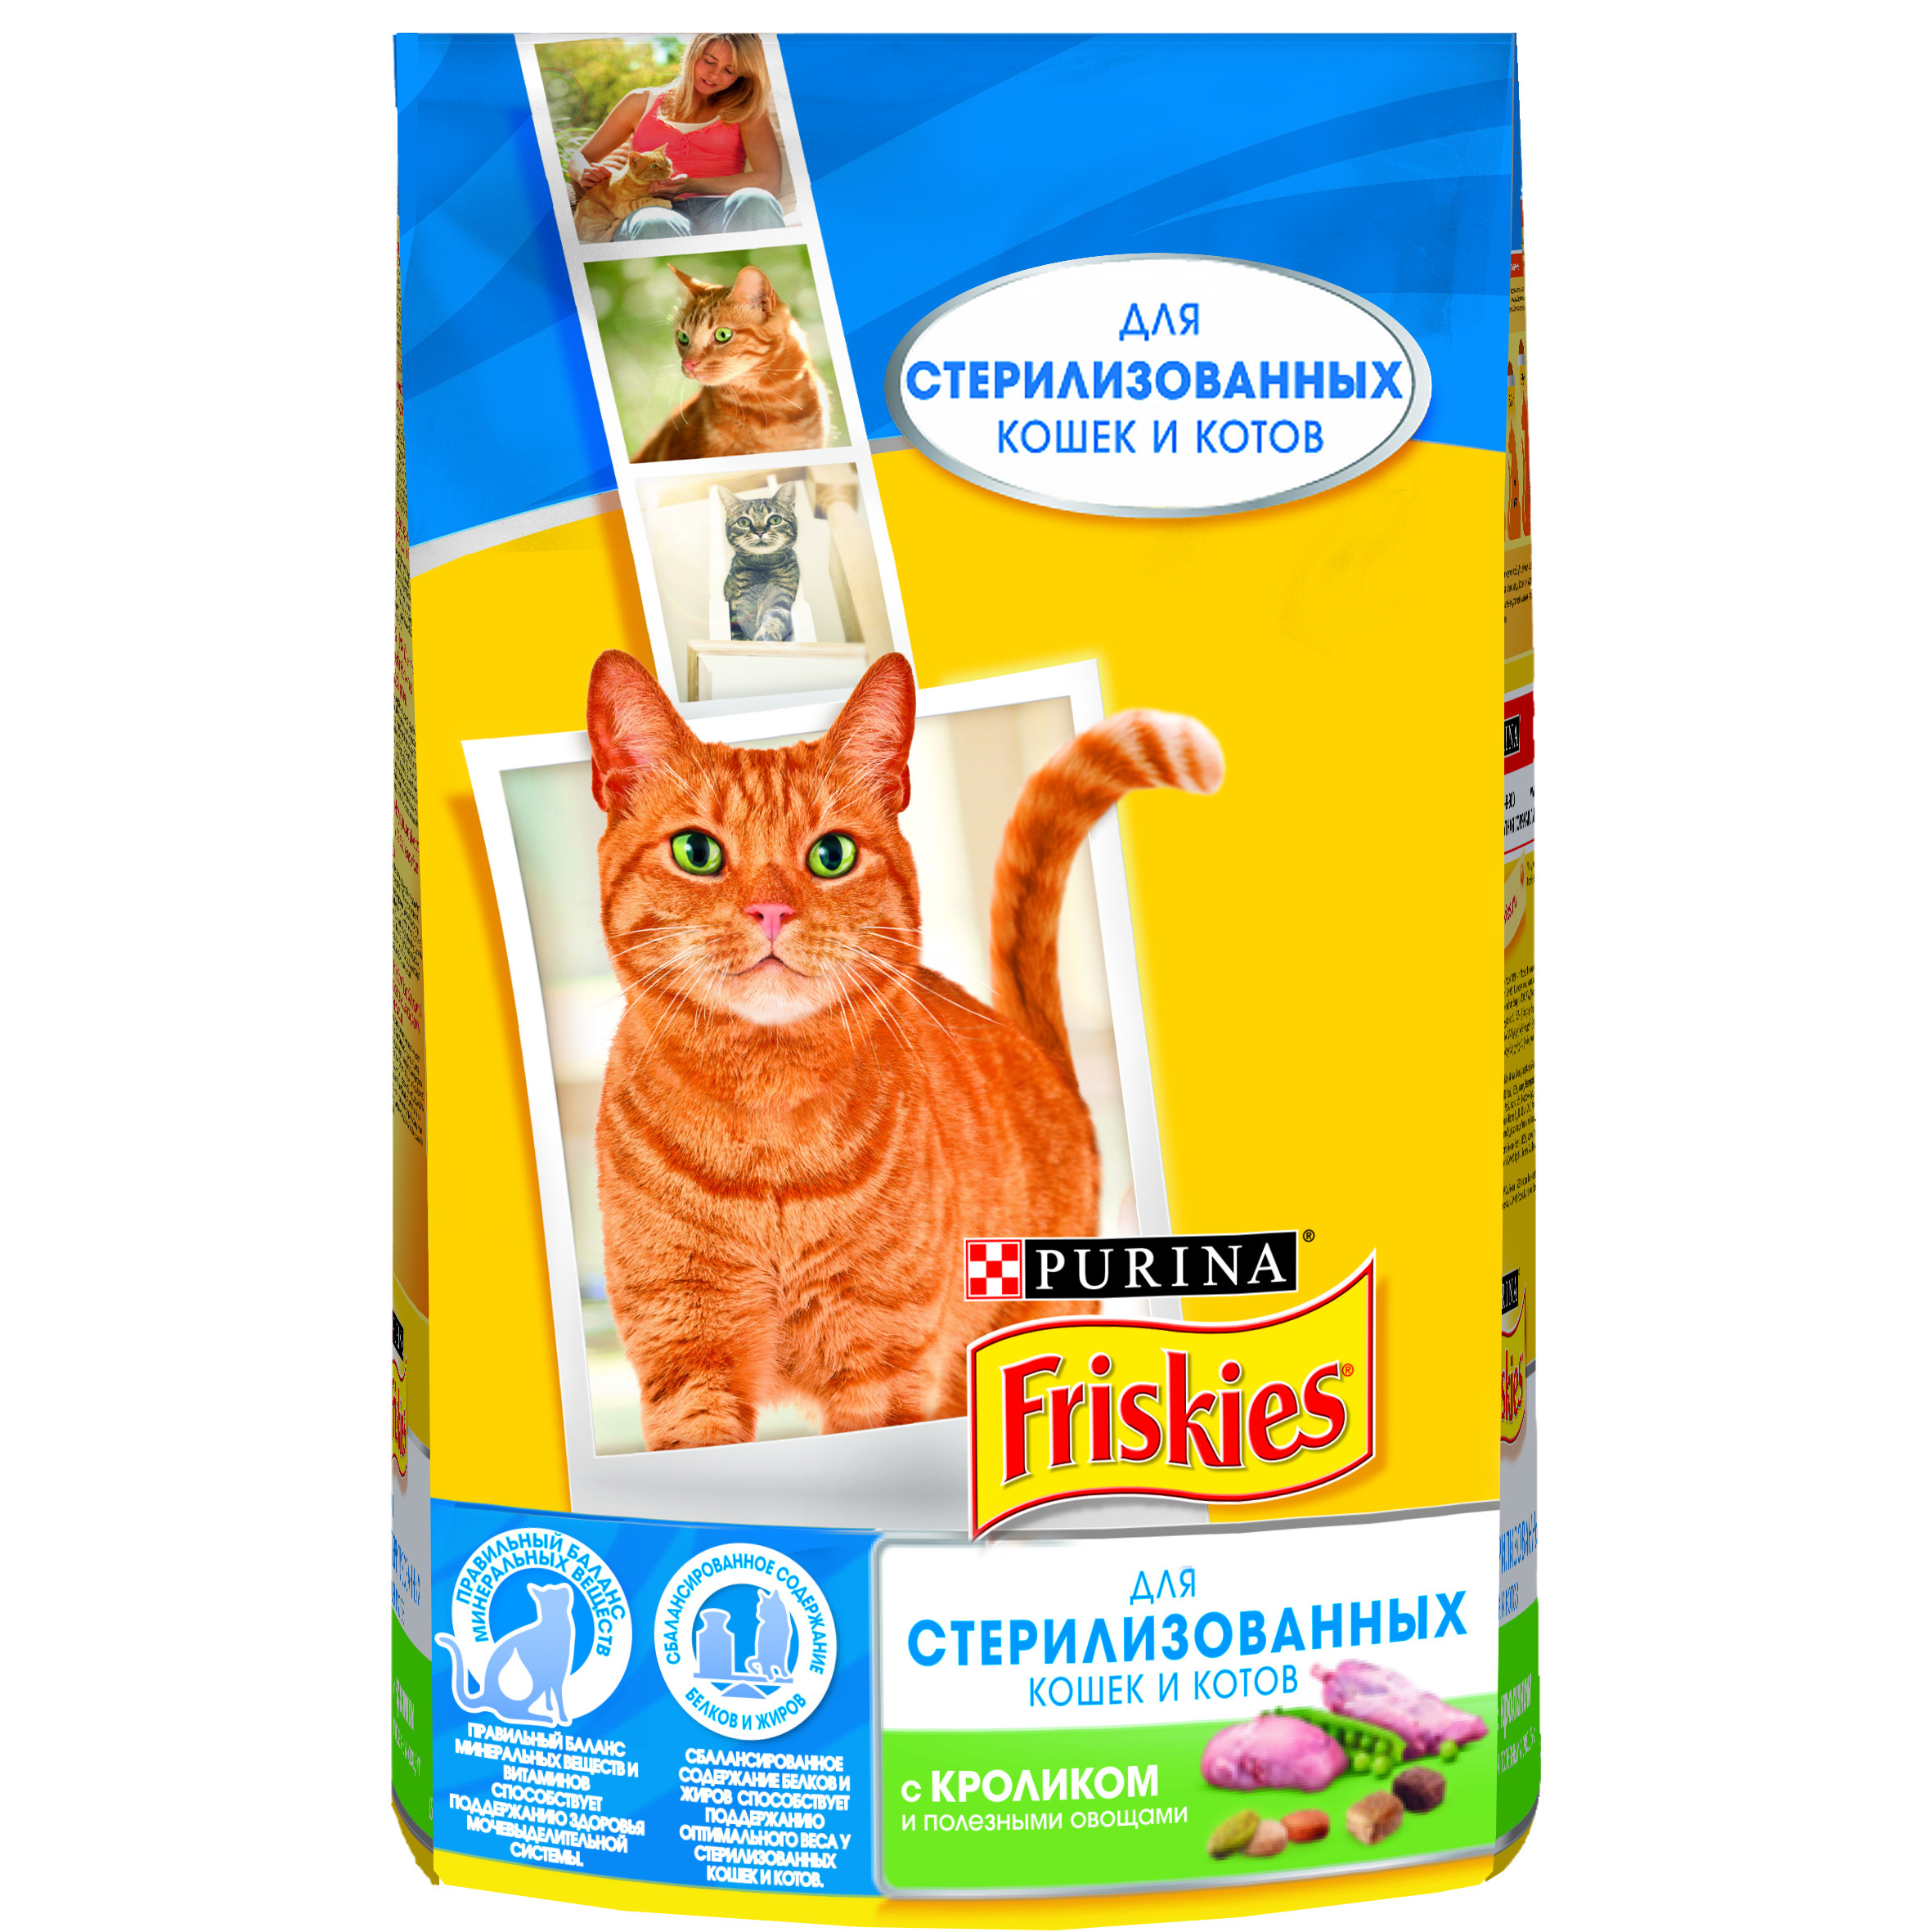 все цены на A set of dry food Friskies for sterilized cats and cats with a rabbit and healthy vegetables, Package, 1.5 kg x 8 pcs. онлайн